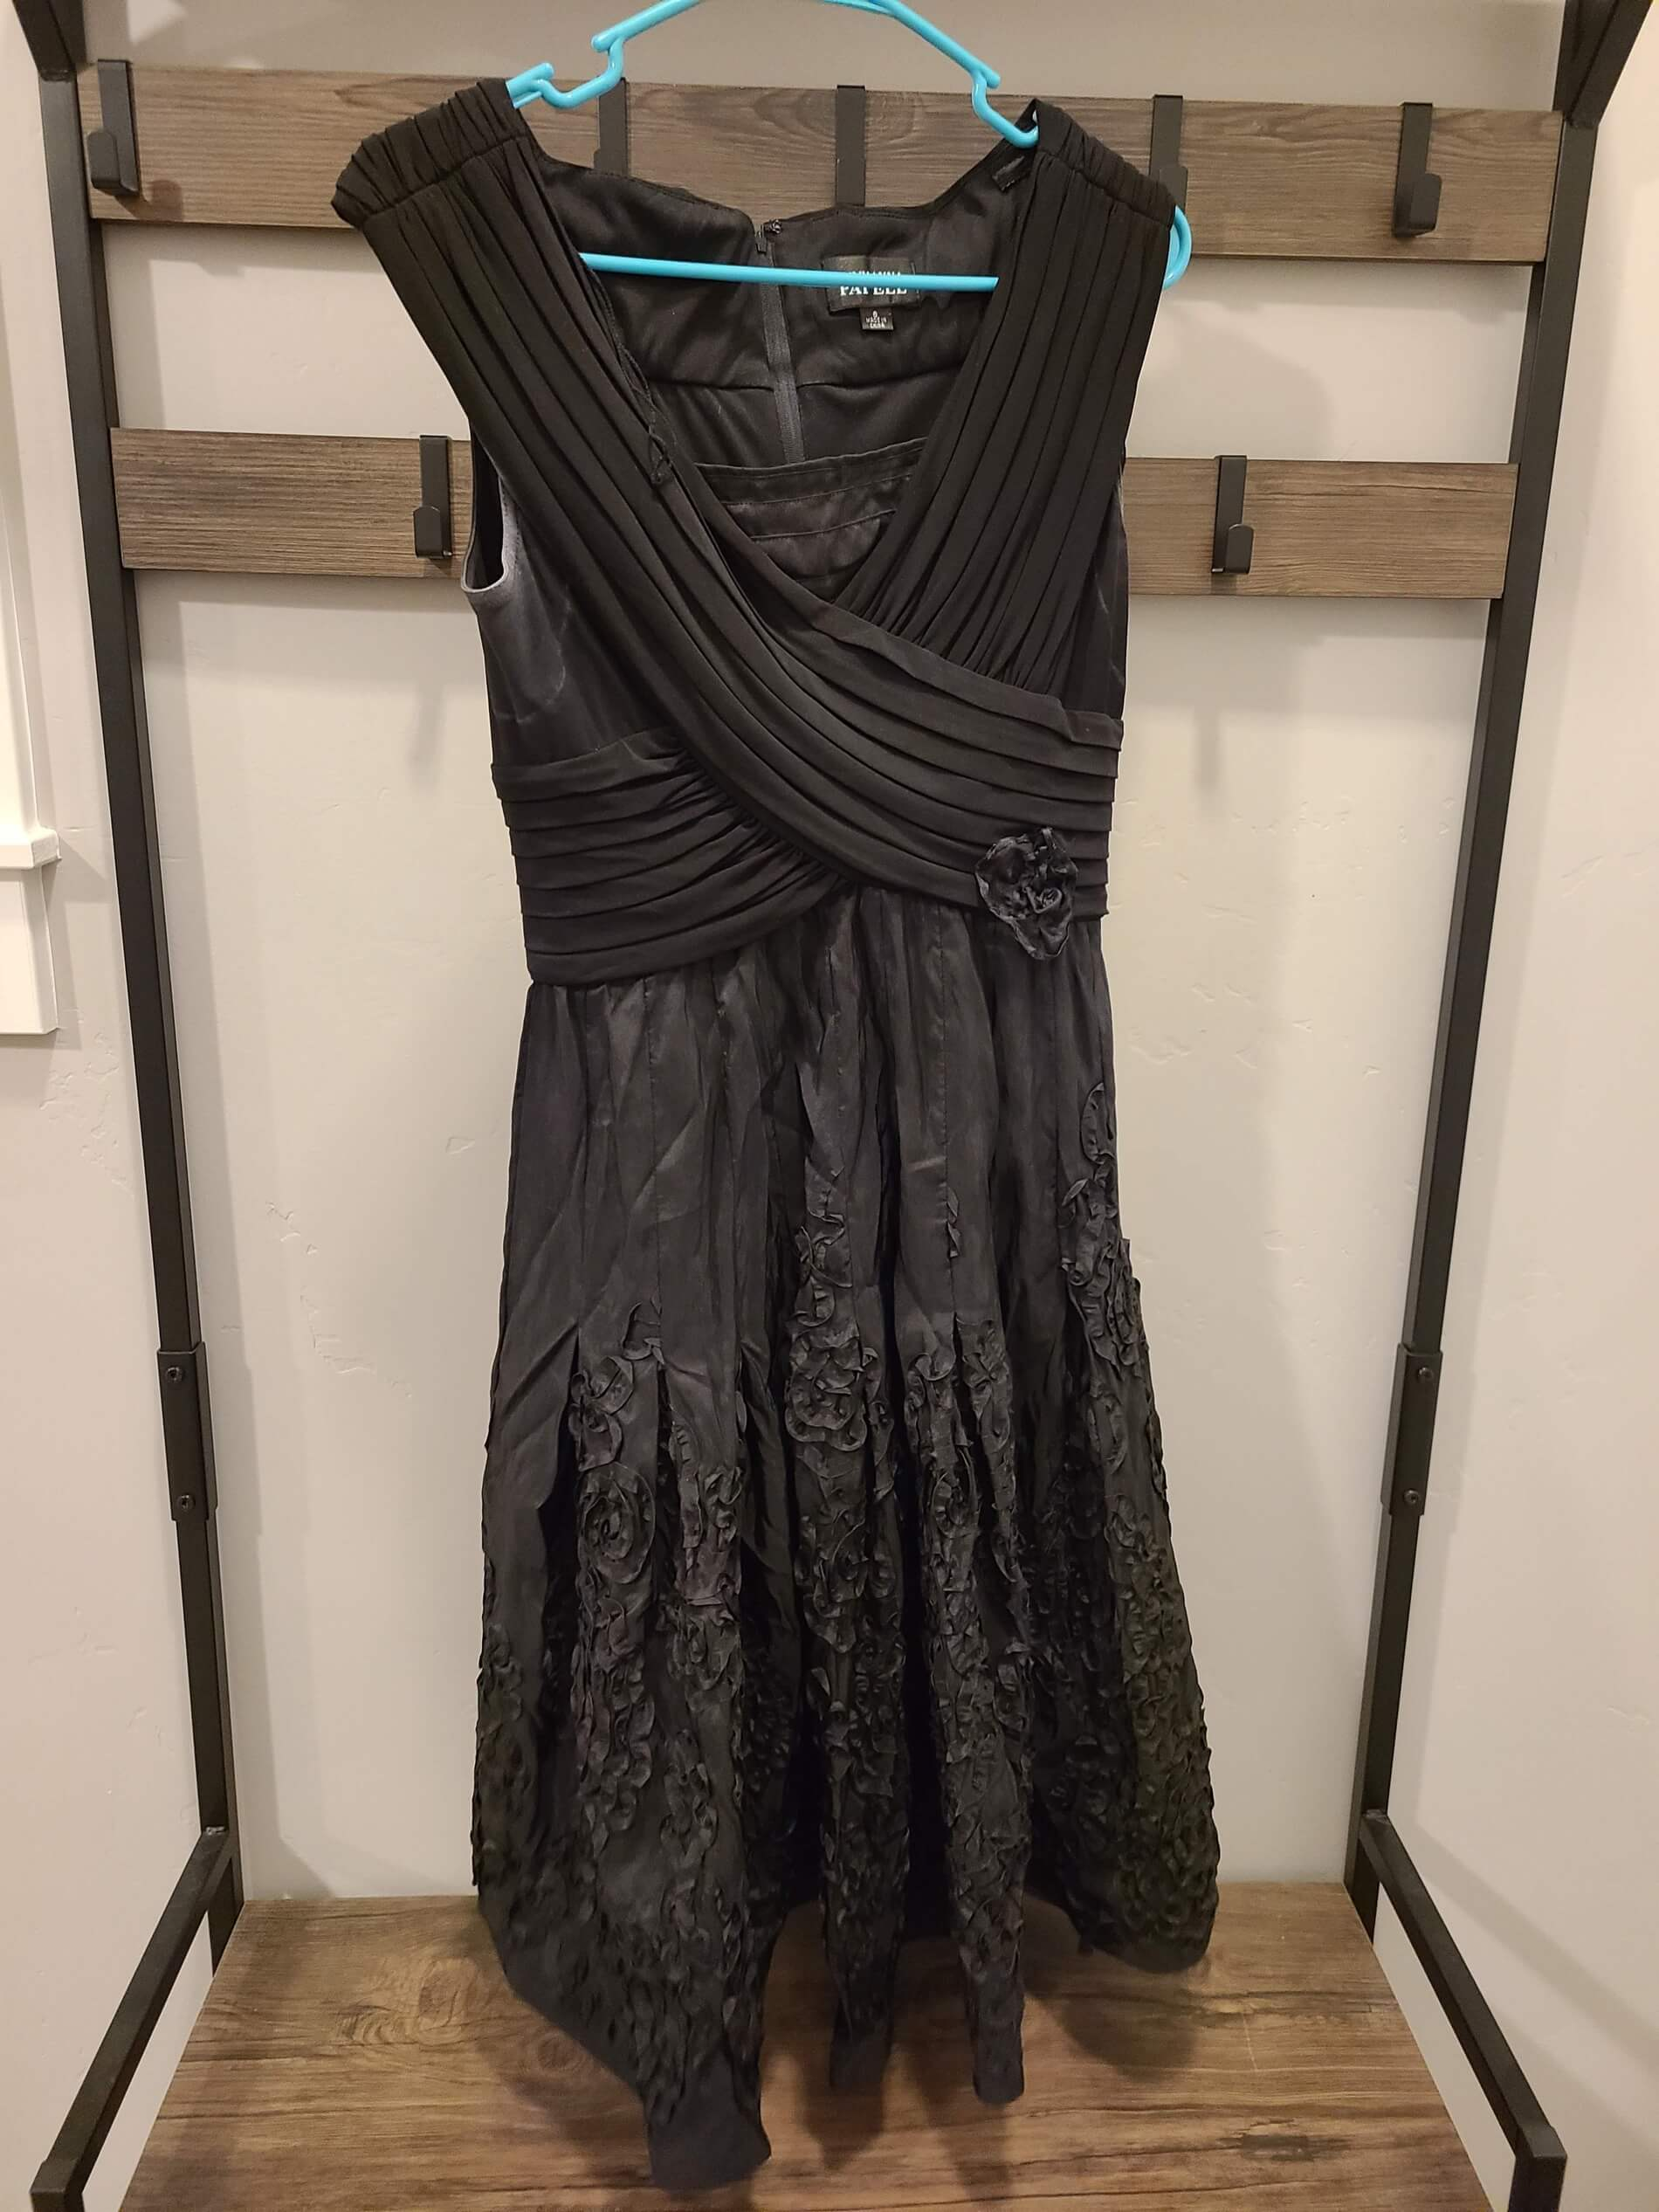 Adrianna Papell Black Size 8 Cap Sleeve Homecoming A-line Dress on Queenly